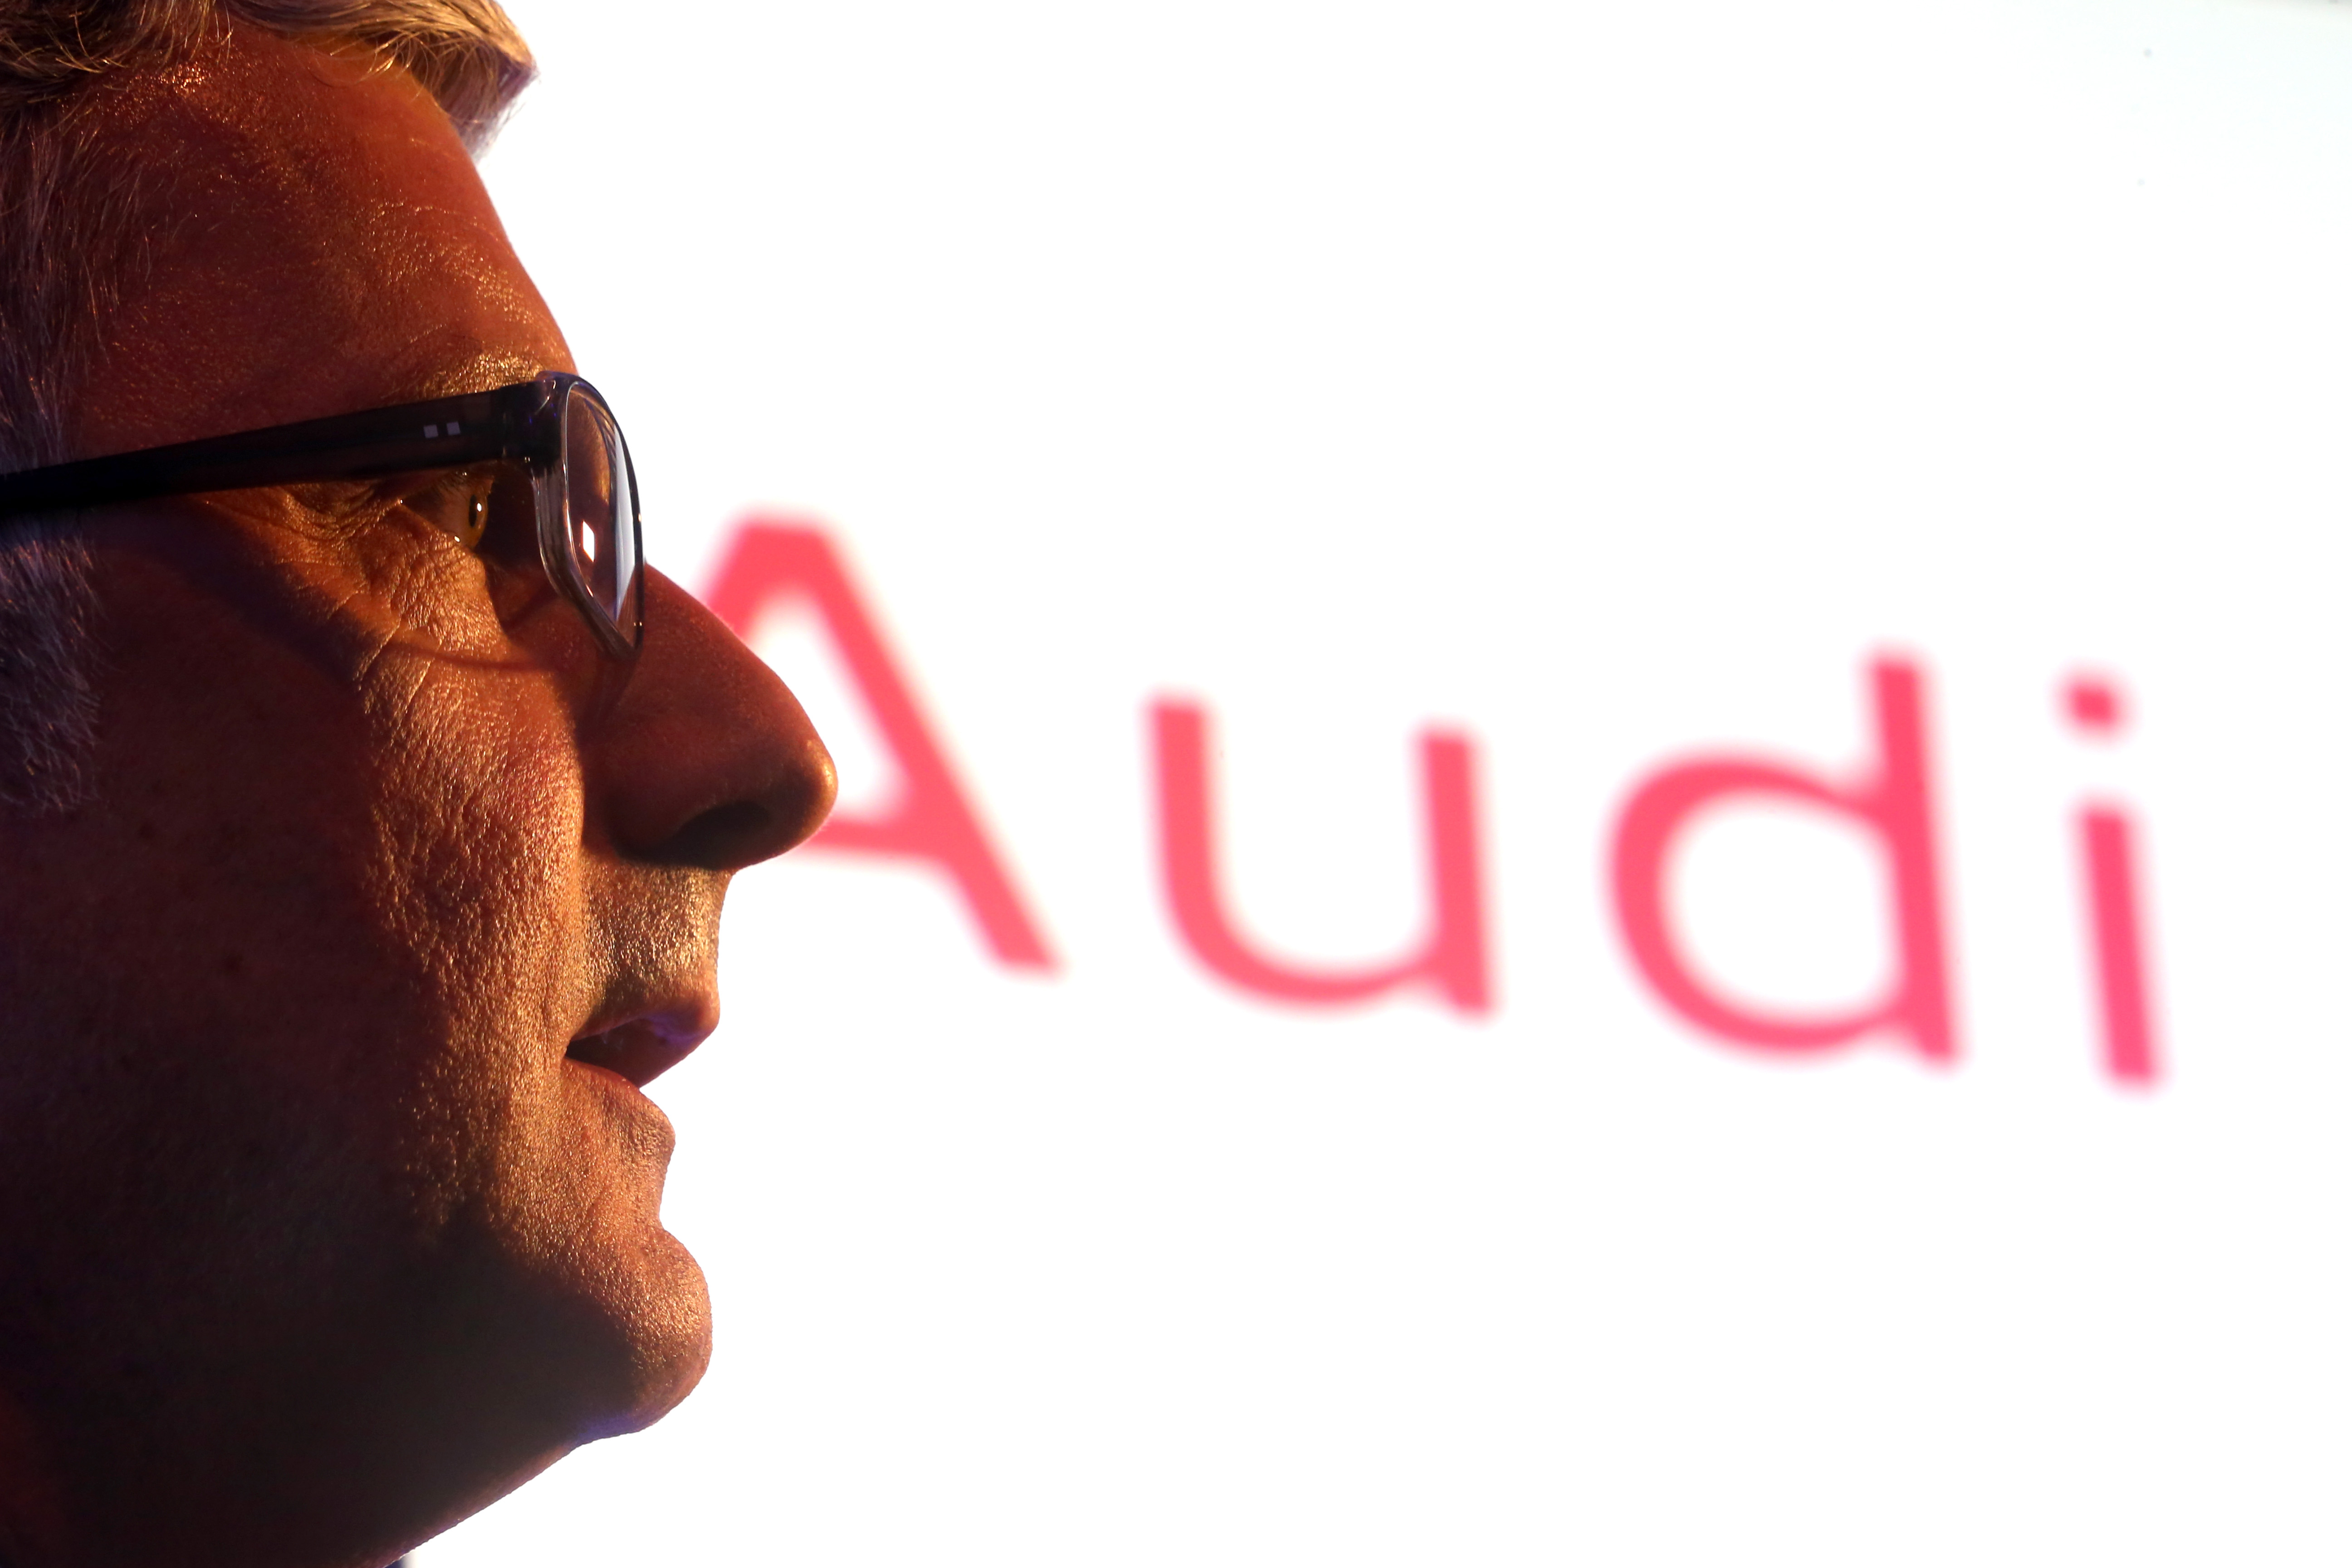 Ex-Audi chief Rupert Stadler faces criminal charges for his role in dieselgate scandal